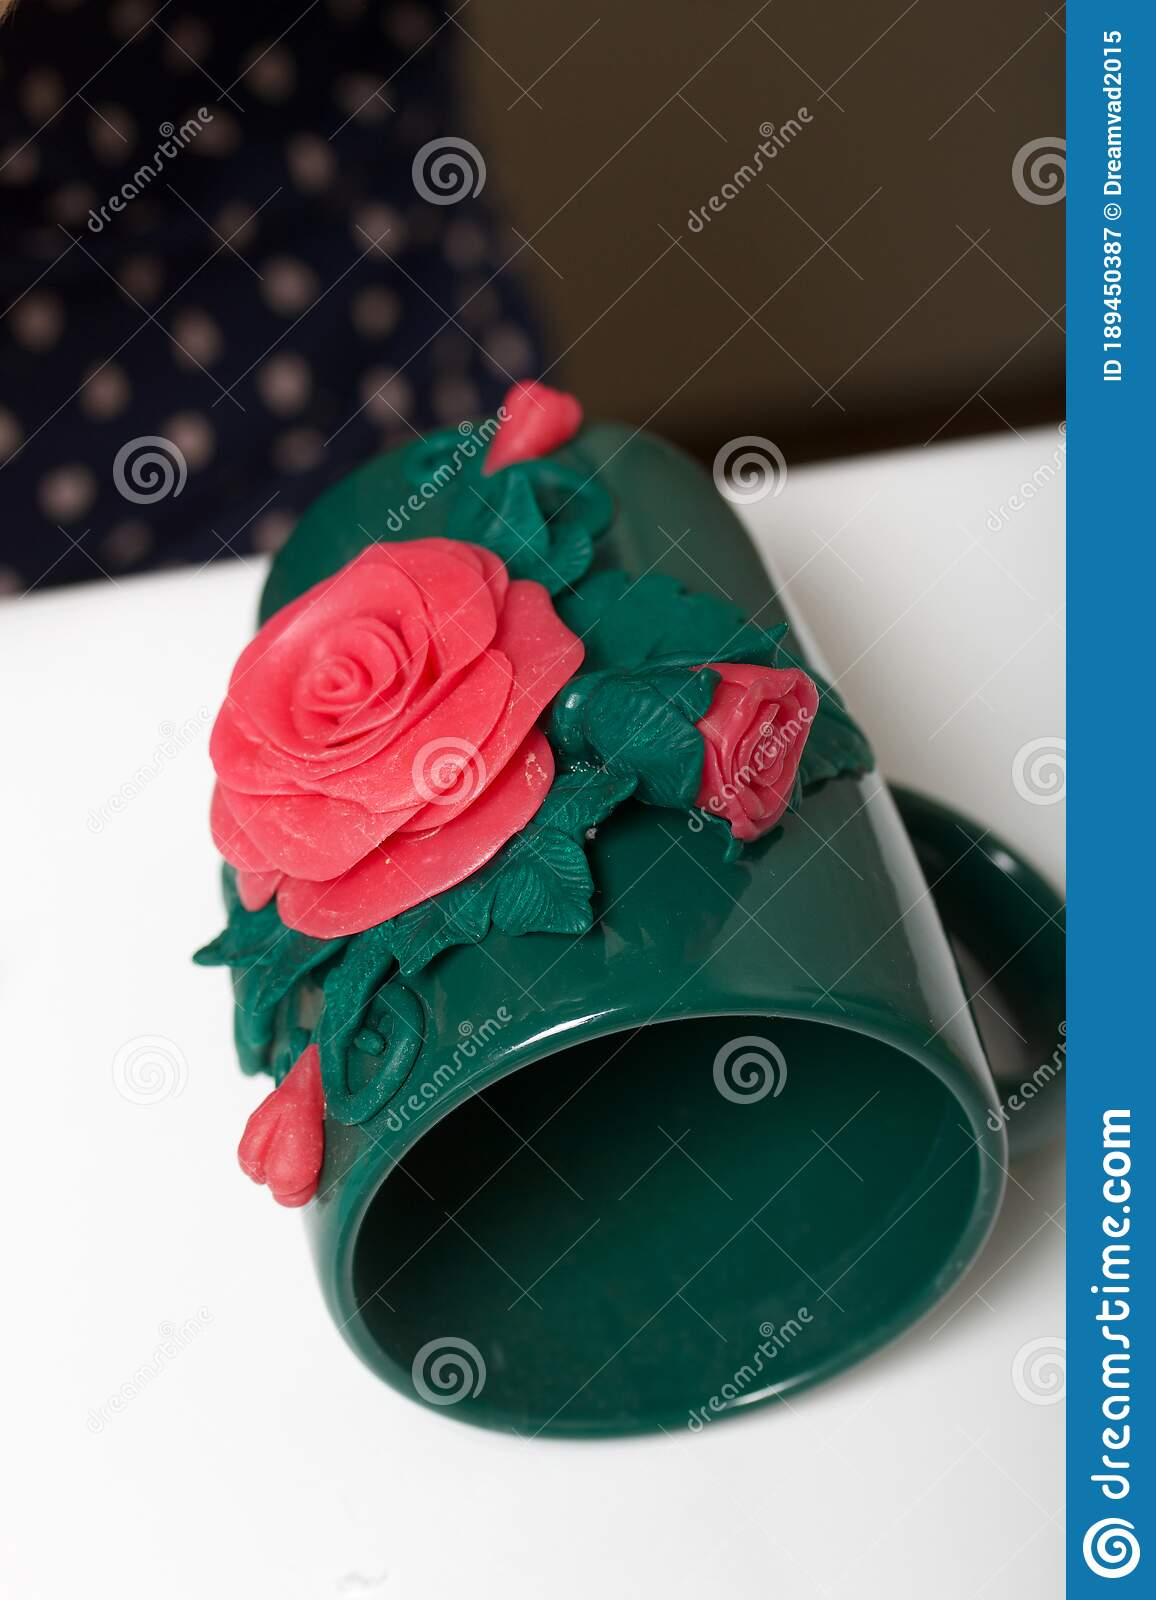 Mug Decorated With Polymer Clay Roses Crafts From Polymer Clay Stock Image Image Of Abstract Decoration 189450387